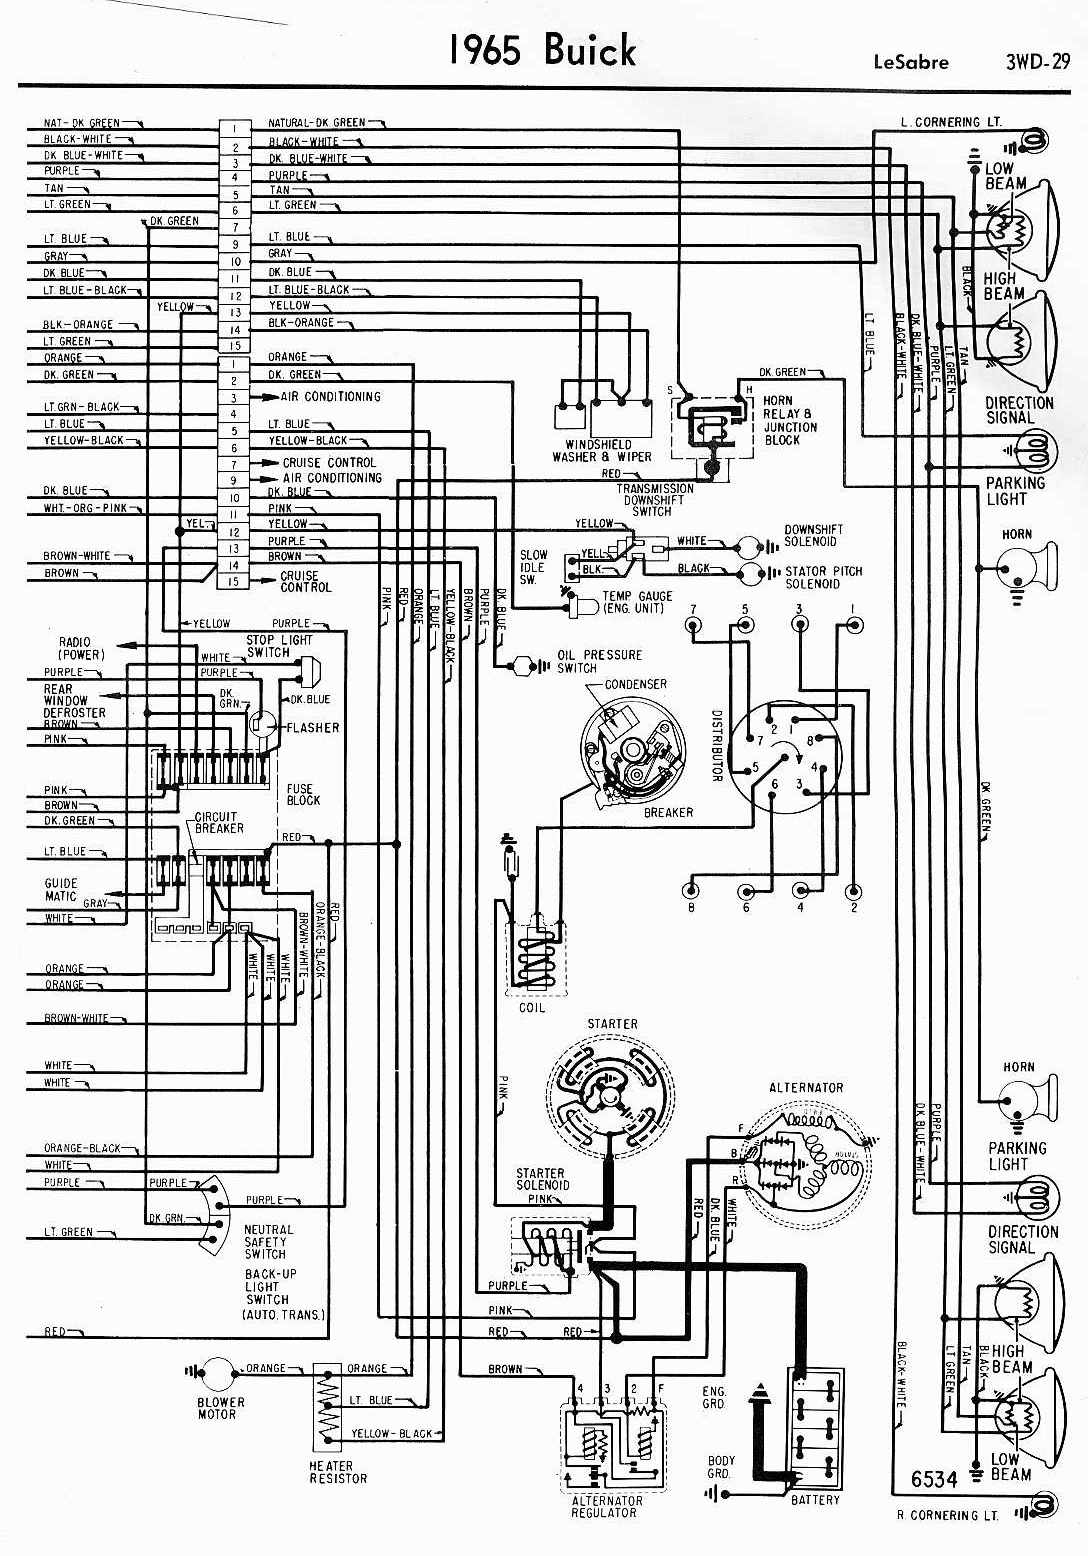 Excellent Free Buick Wiring Diagrams Gallery ufc204 diagram – Ignition Wire Diagram For A 1963 Buick Riviera